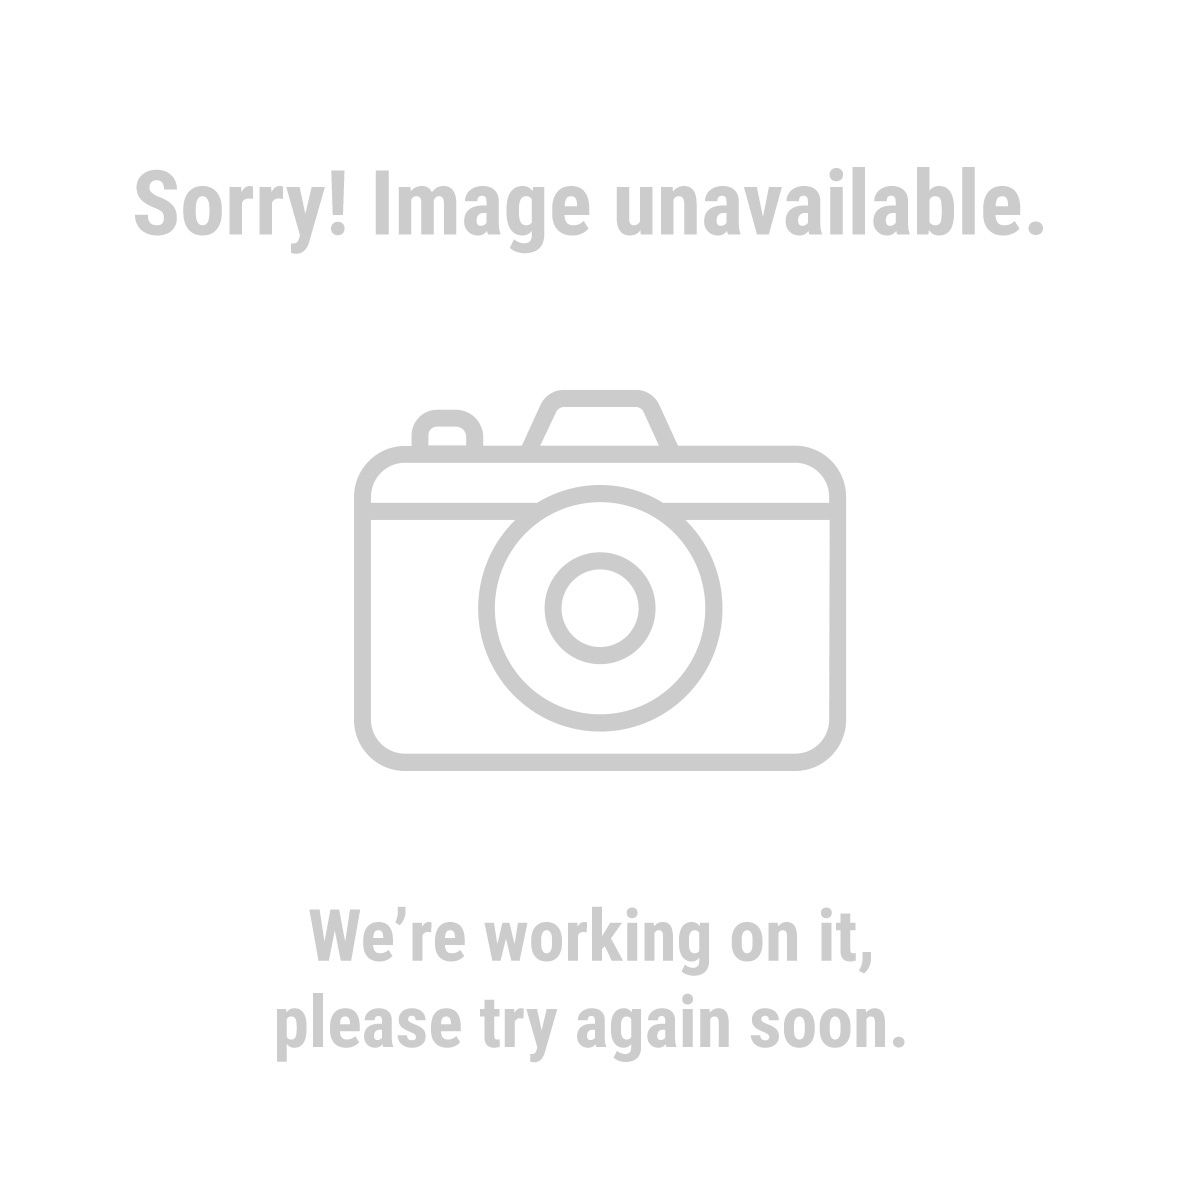 Info On Parallel And Series Wiring For 12 24 Volt Batteries 100 Watt Solar Panel Kit